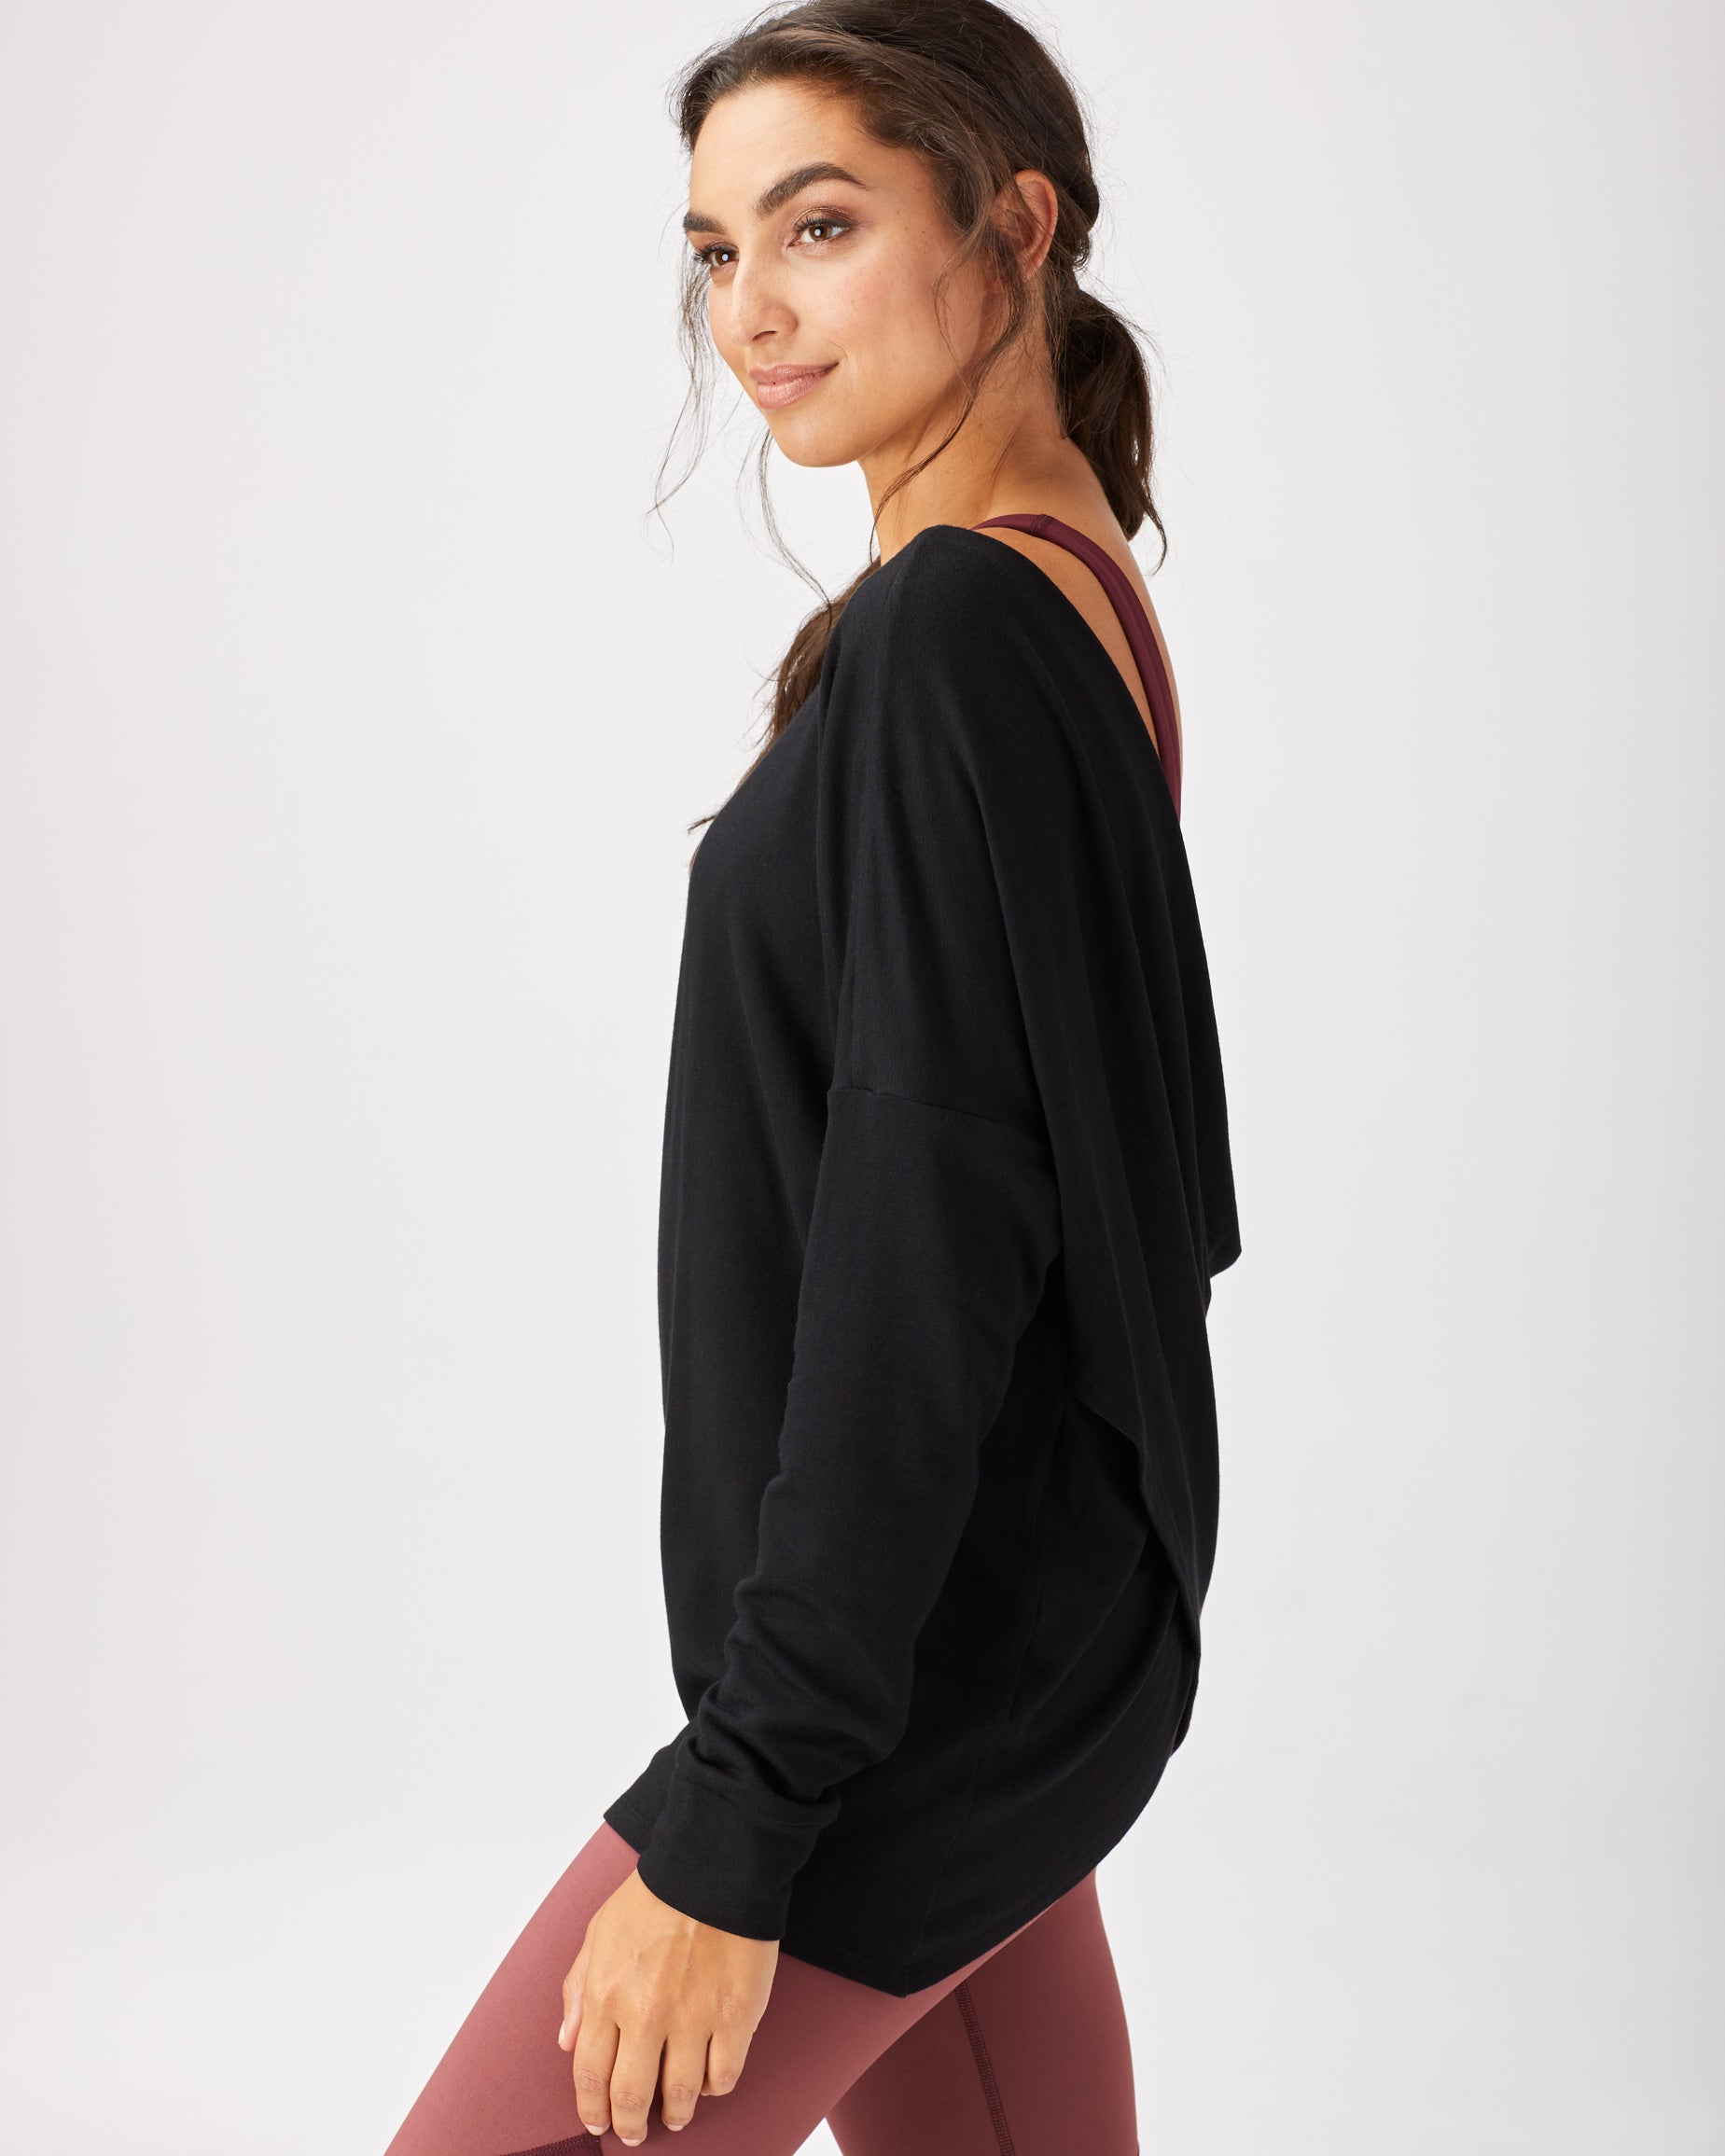 Wander Sweatshirt - Black